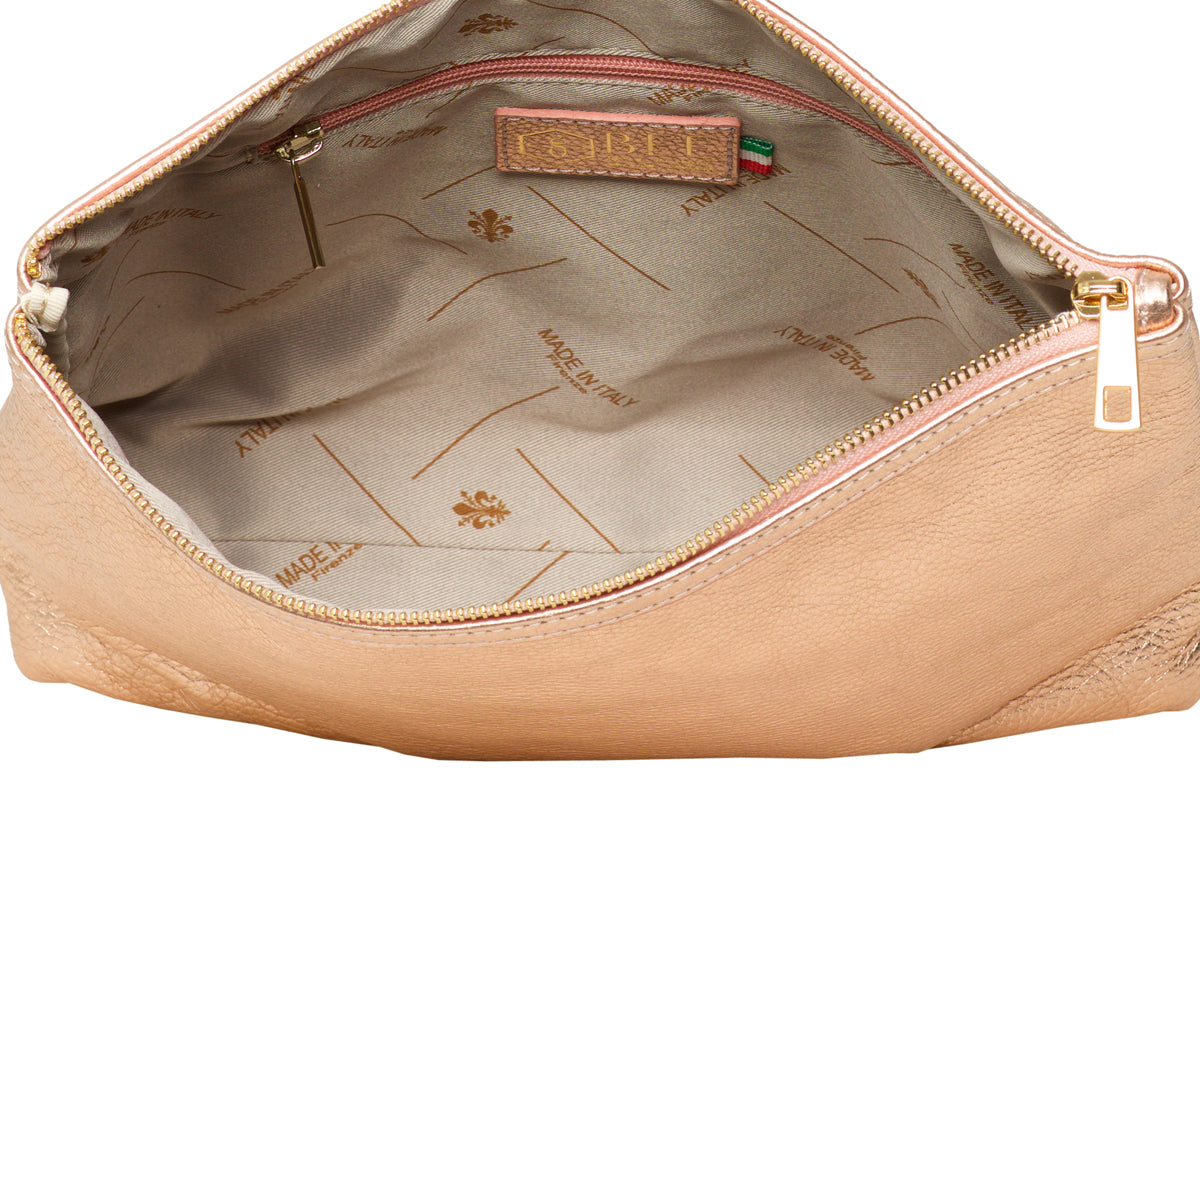 Melita Rose Gold - Cosmetic bag / Clutch Bag